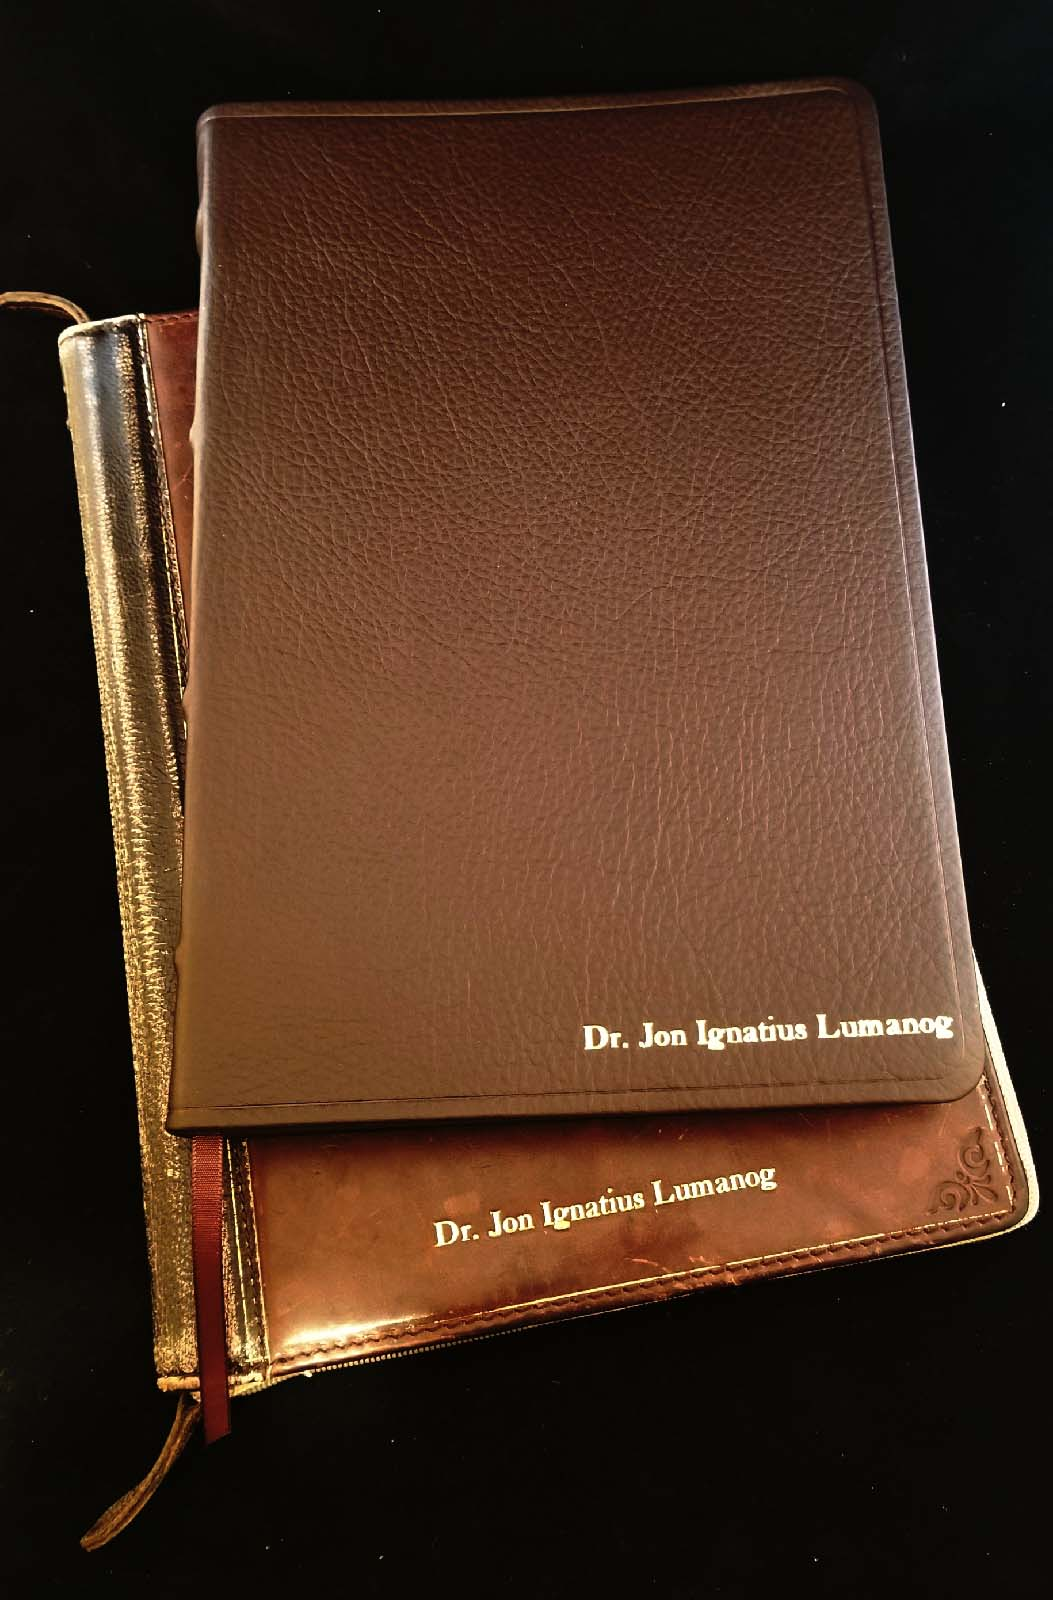 Hot Foil Stamping A Leather Ipad Cover And Bible For A